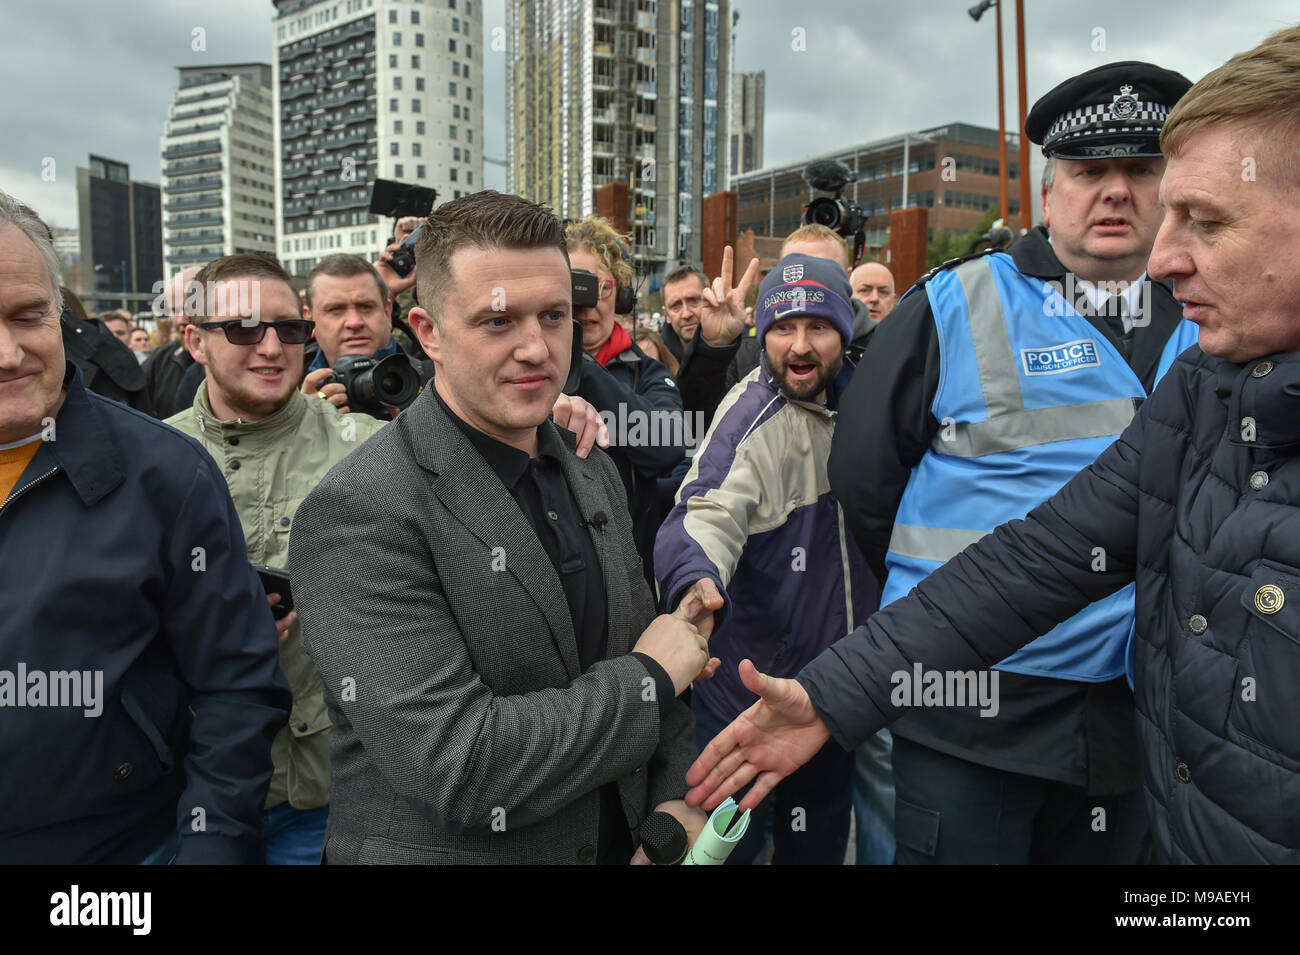 Birmingham, United Kingdom. 24 March 2018. People have gathered for the 'Football Lads Alliance' (FLA) demonstration in Birmingham. There were speeches from John Mieghan, Anne Marie Waters, Luke Nash-Jones and Aline Moraes. After a short march the group dispersed in Edgbaston St. Pictured: Tommy Robinson  Credit: Peter Manning/Alamy Live News - Stock Image